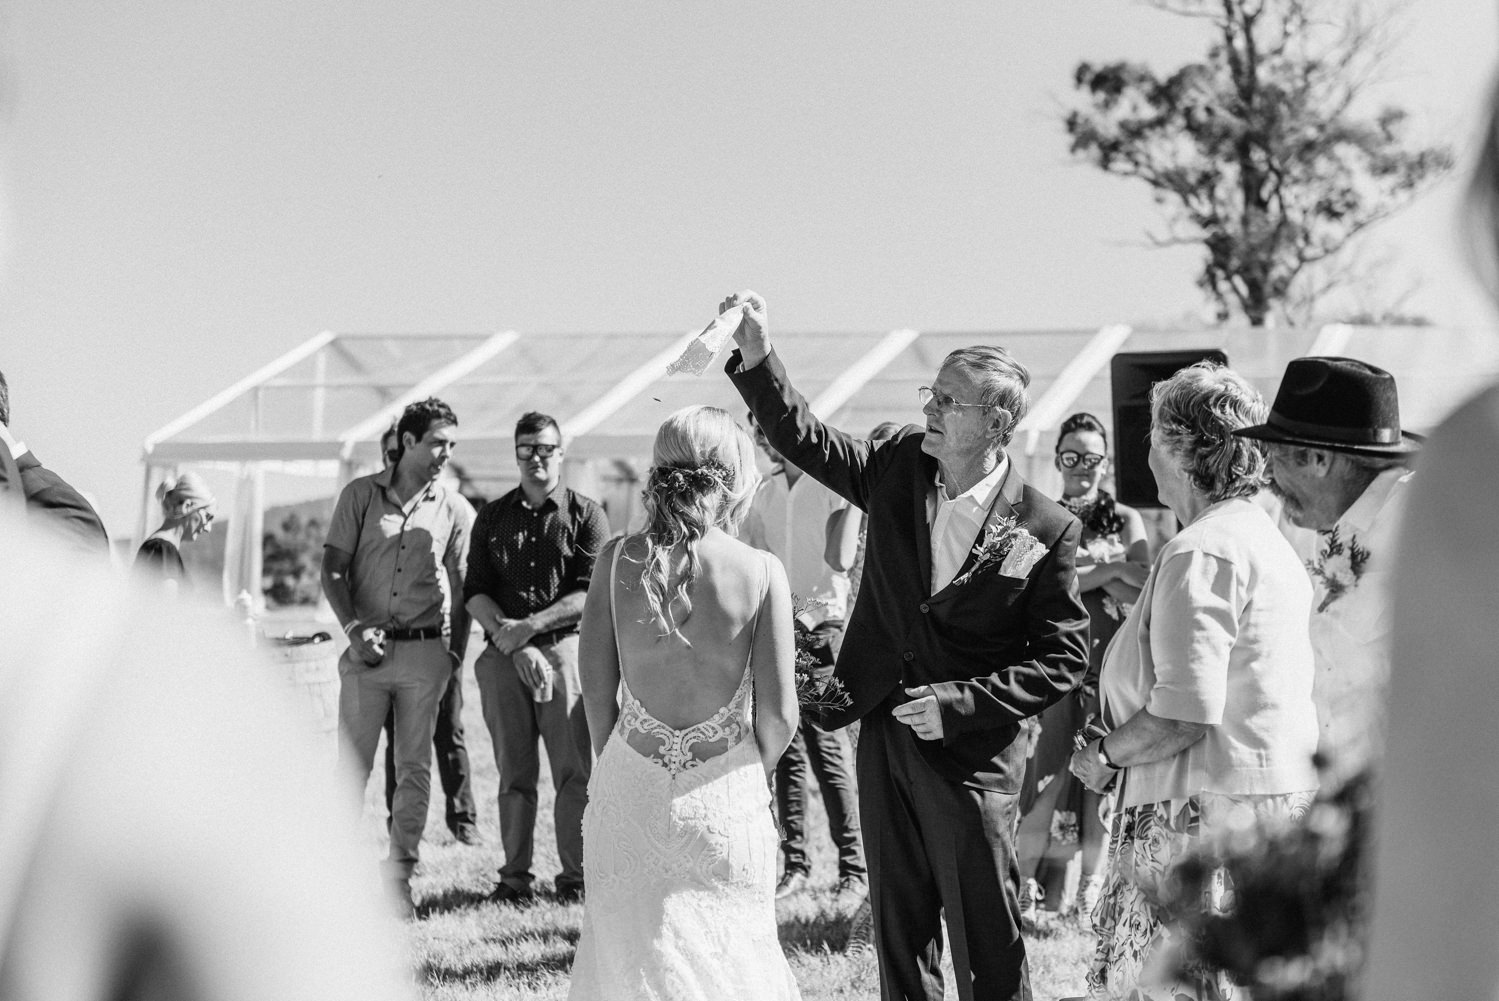 Launceston-Wedding-Photographer-63.jpg